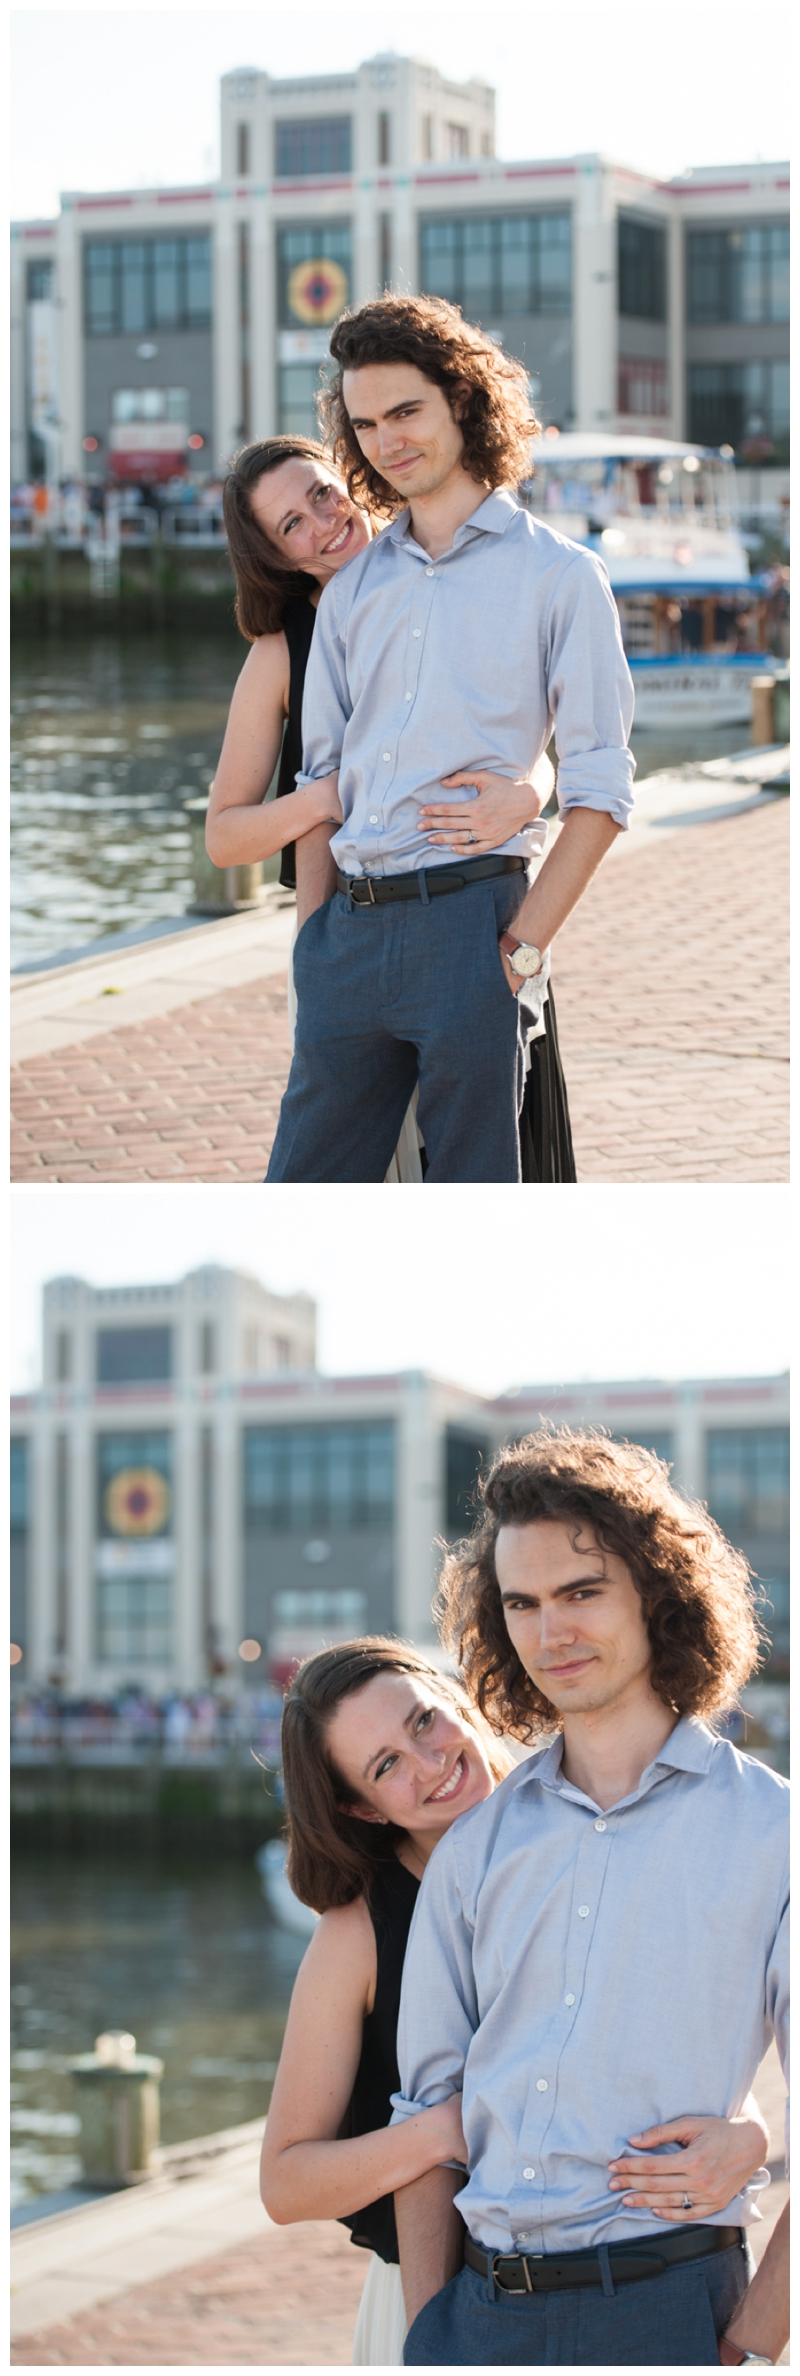 Engagement Session in Alexandria, Virginia by Rachael Foster Photography_0016.jpg